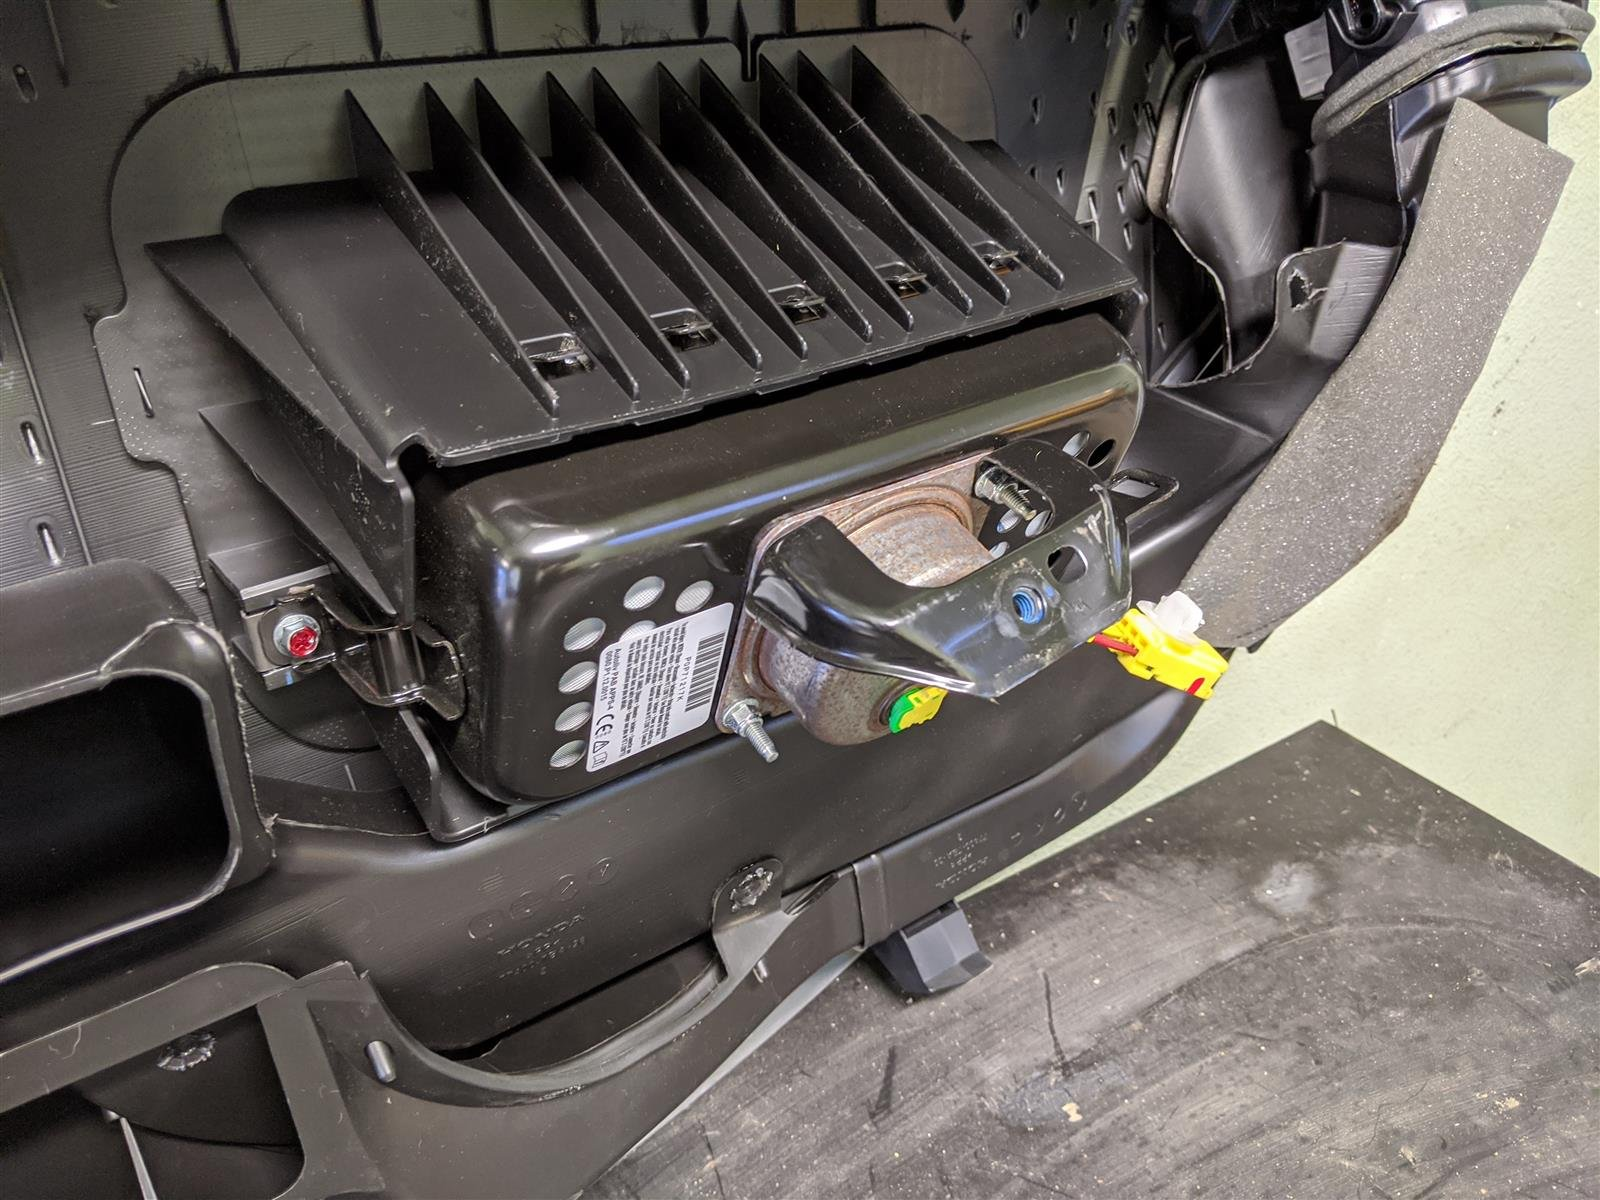 2018 Honda Civic Dashboard With Airbag Replacement